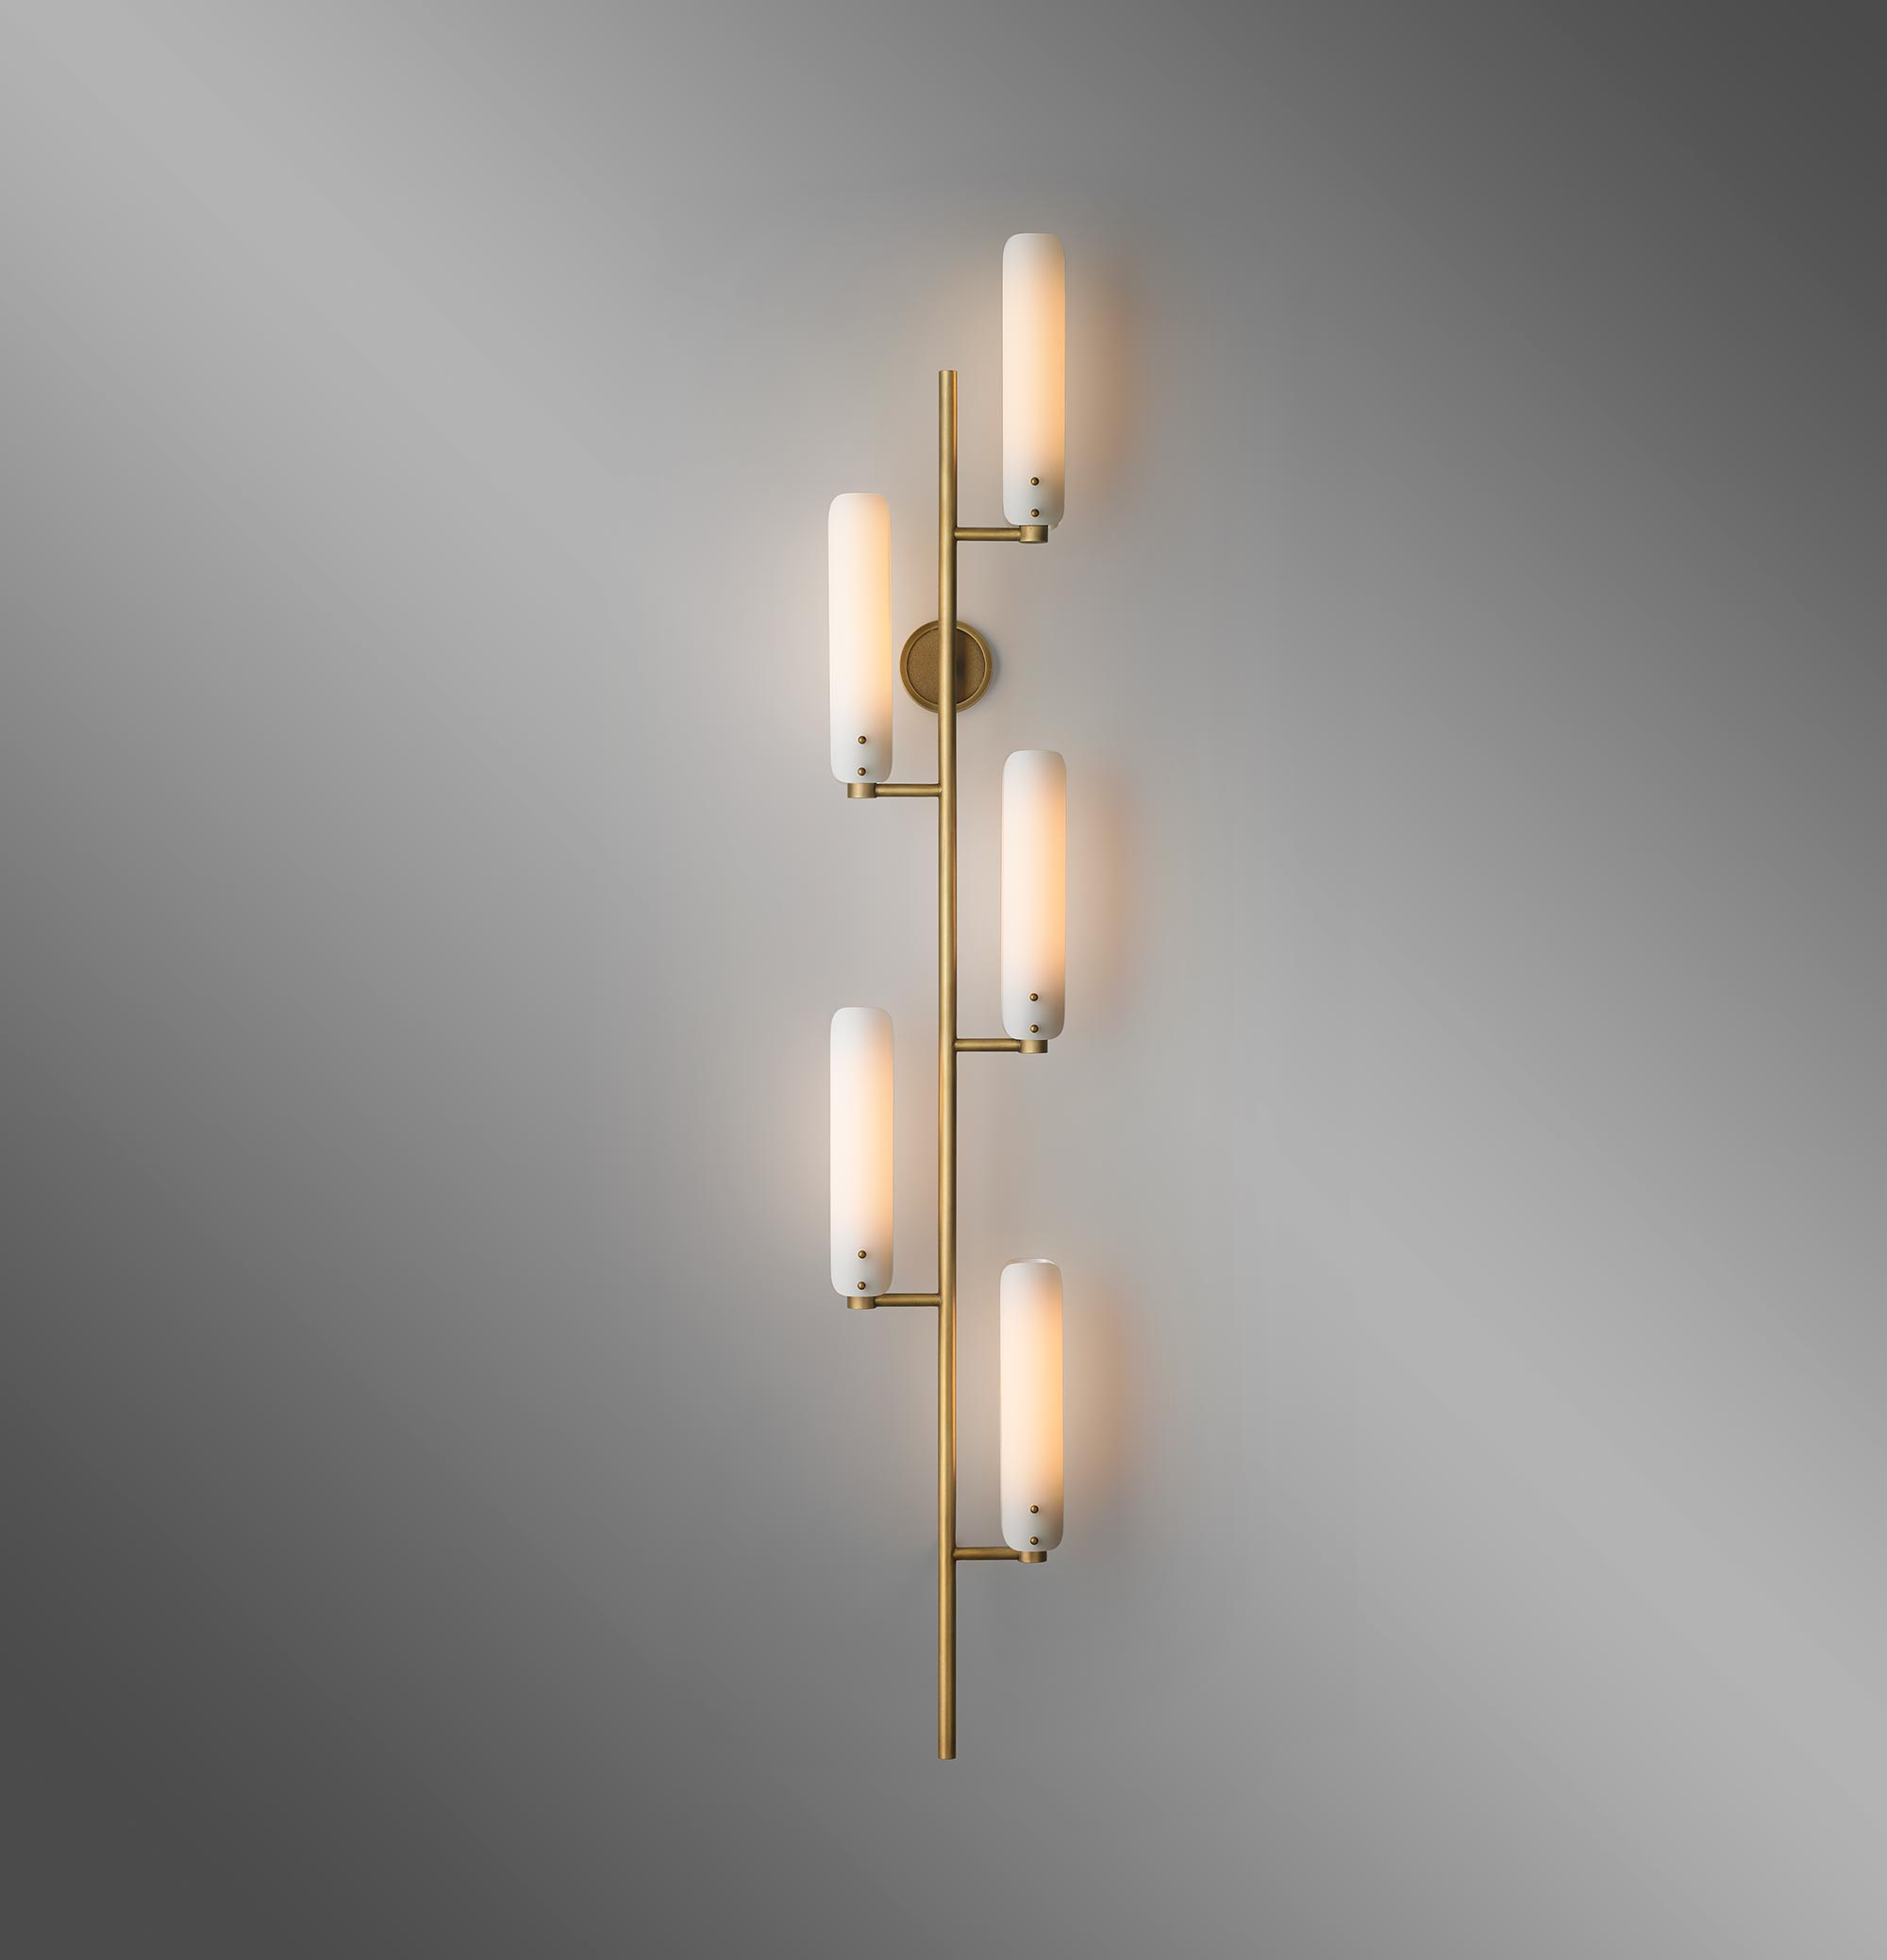 Platiere 5 Light Sconce 19059